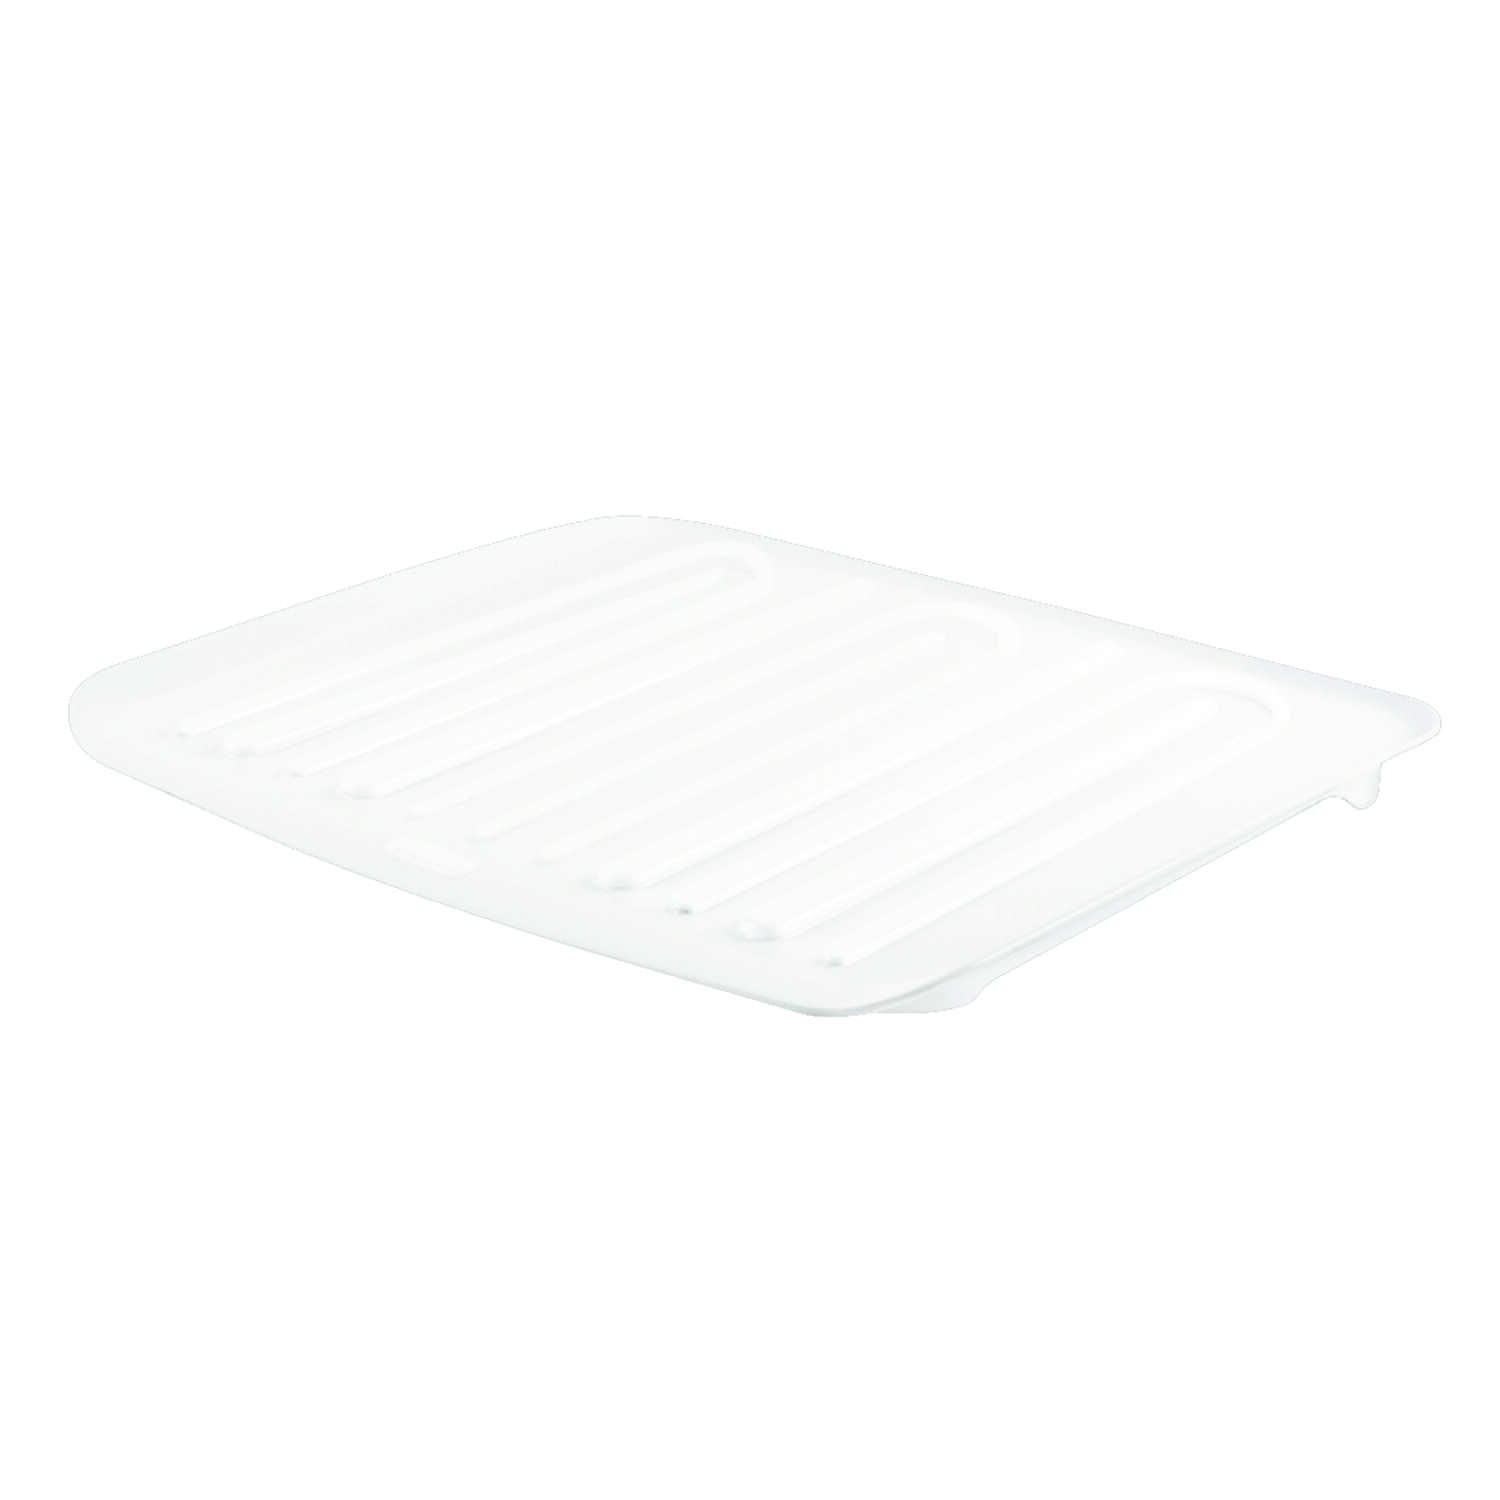 Rubbermaid  1.3 in. H x 18 in. W x 14.7 in. L Plastic  Dish Drainer  White